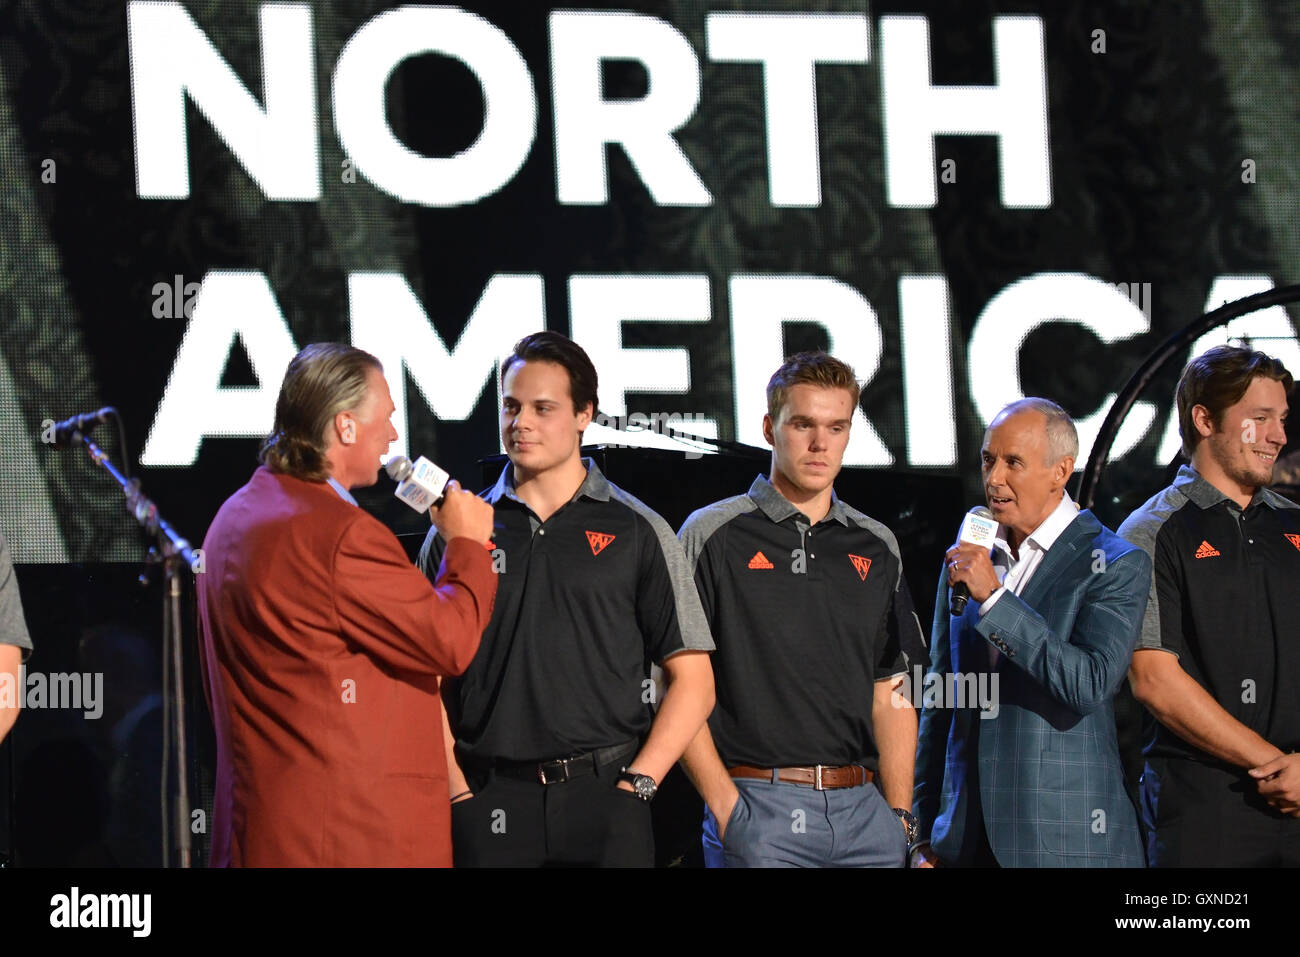 Toronto, Canada - September 16, 2016:  Barry Melrose and Ron Maclean interview Auston Matthews and Connor McDavid - Stock Image